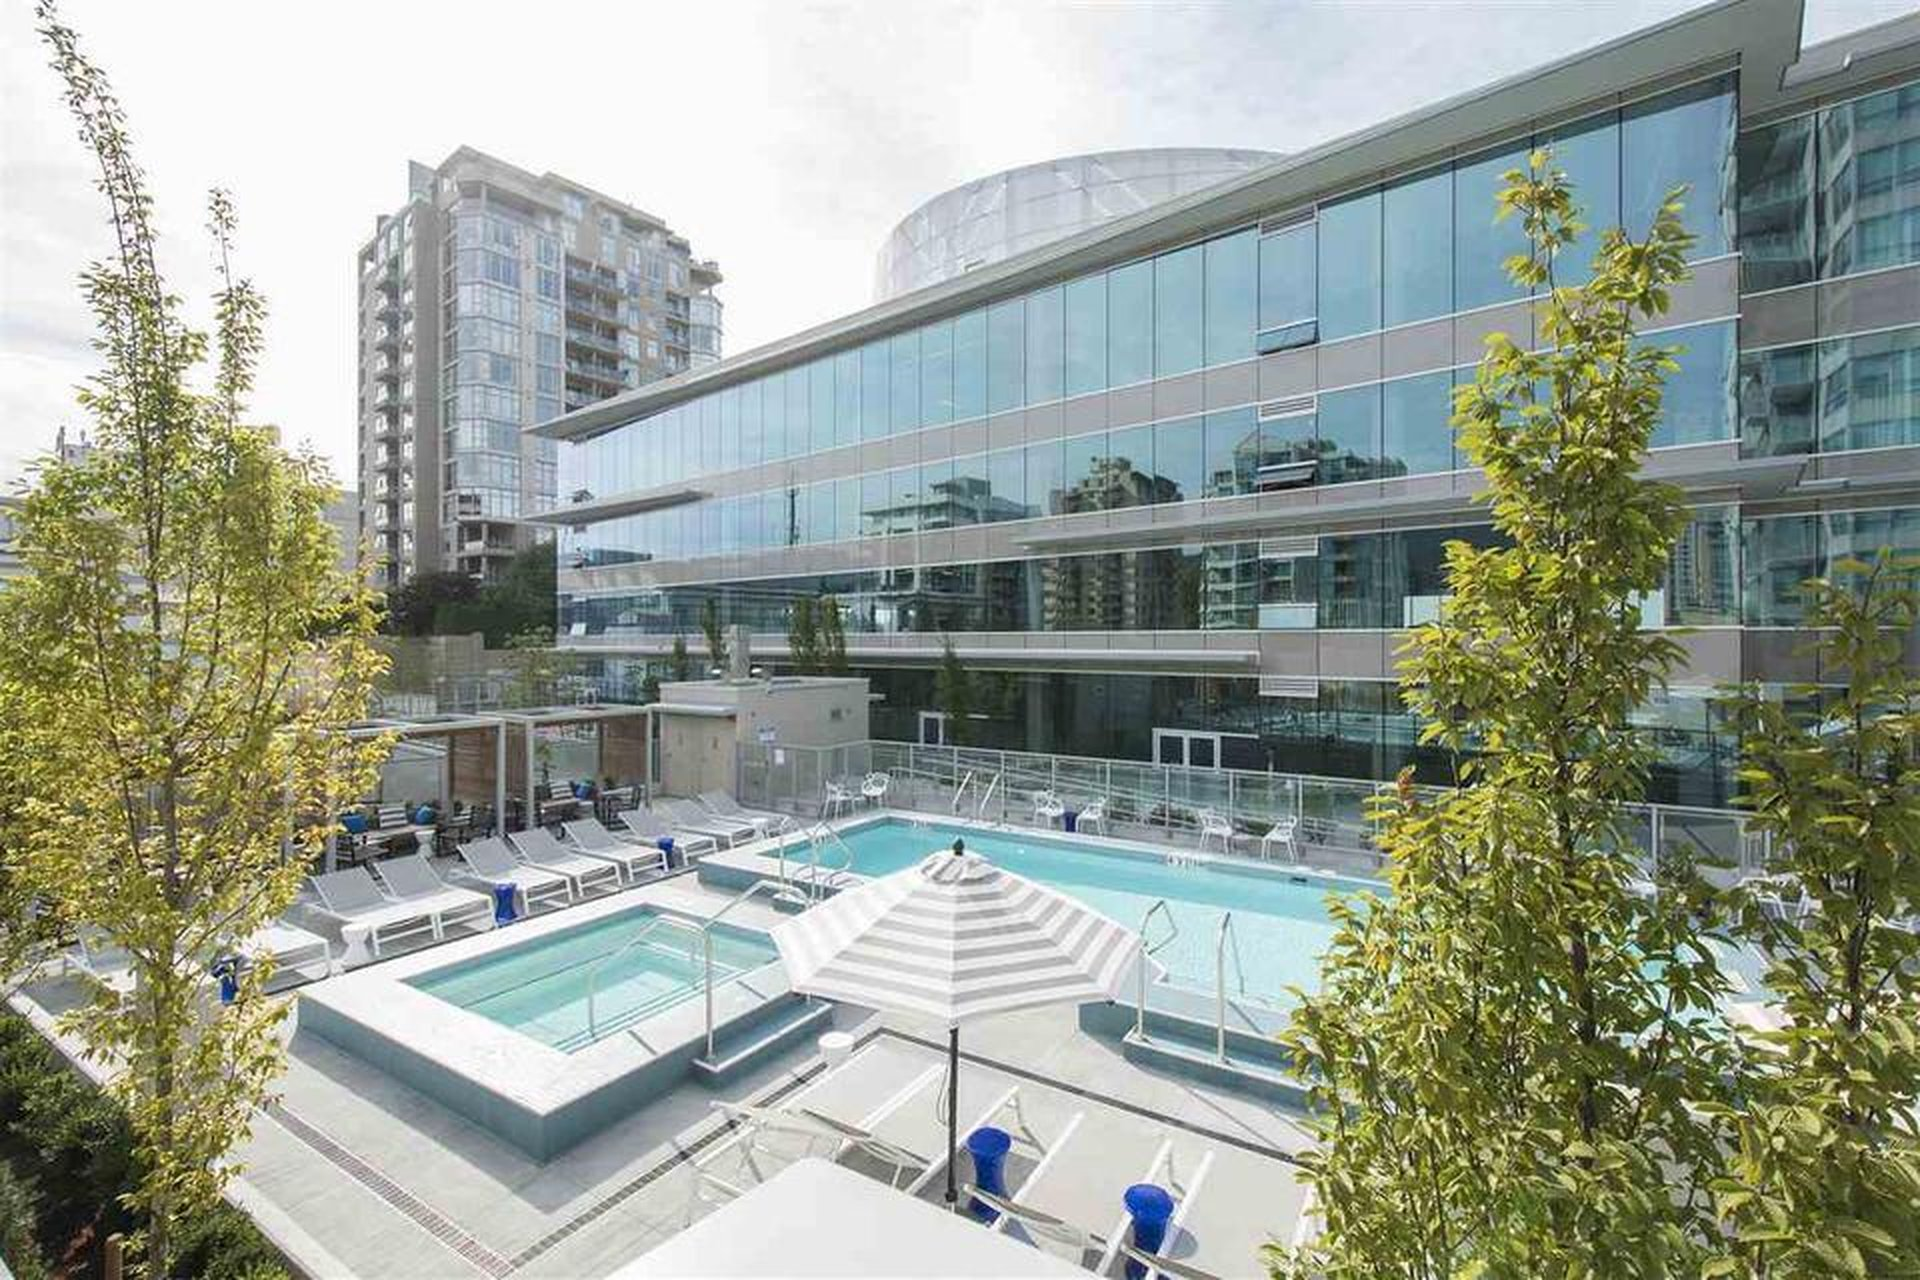 Centreview - 125 E 14th St | Condos For Sale + Listing Alerts